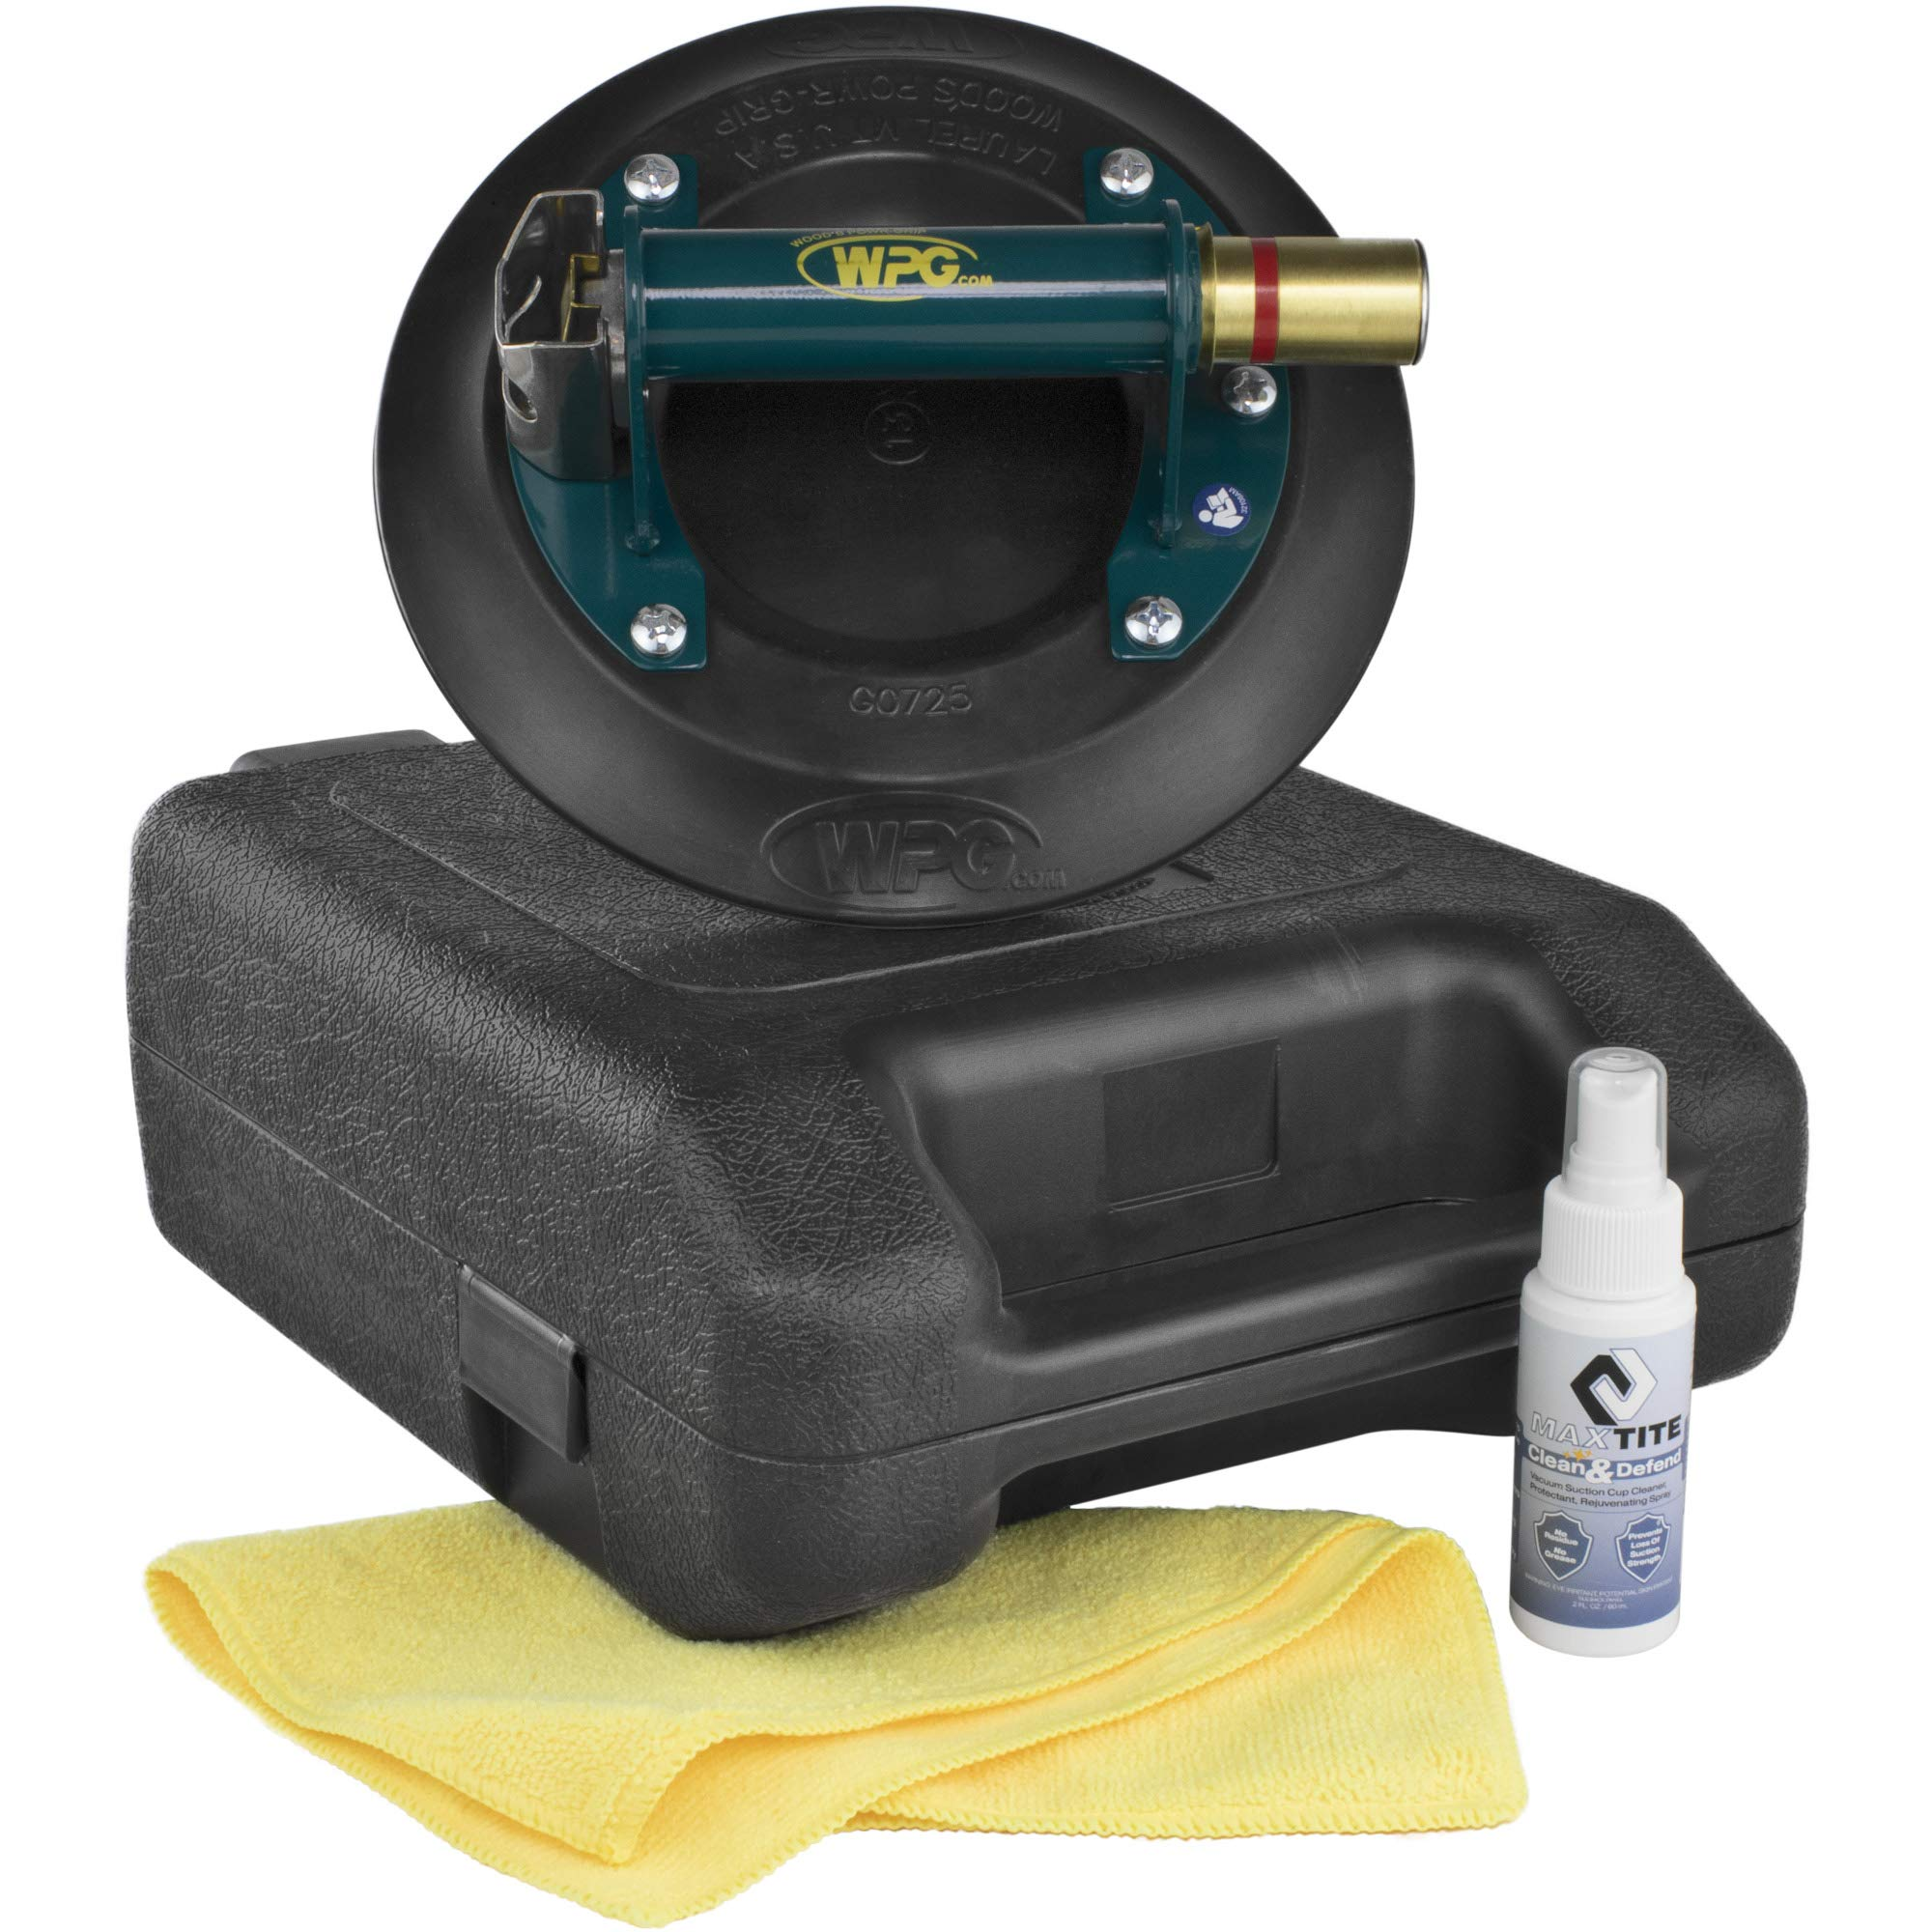 9'' Wood's Powr-Grip N5450 Metal Handle Plunger Vacuum Suction Cup Lifter 150lbs Capacity w/Case Bundled with MaxTite Clean & Defend Vacuum Suction Cup Cleaner and Microfiber Cleaning Cloth by Wood's Powr-Grip, MaxTite